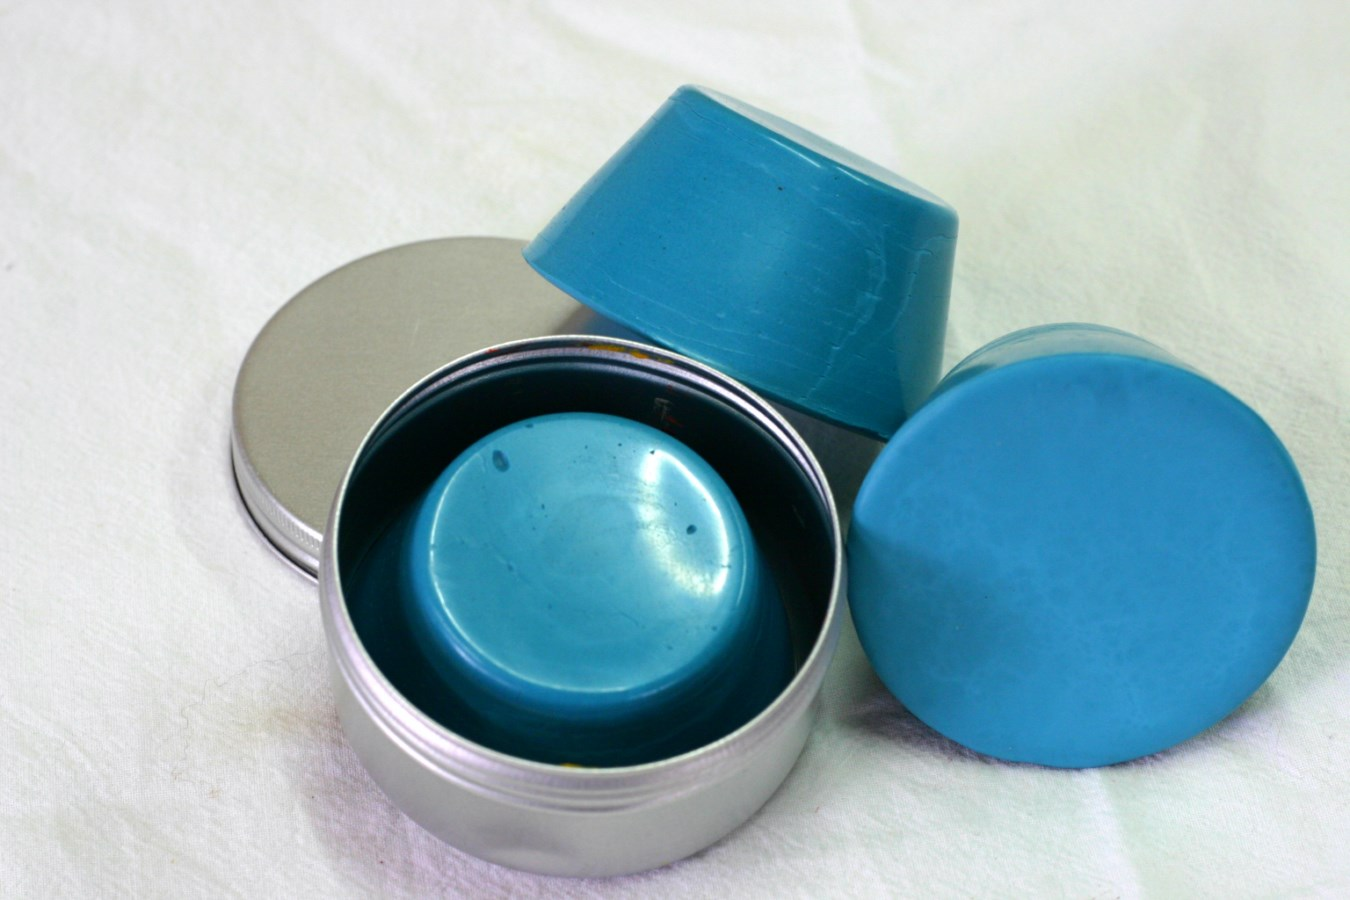 bleu phtalocyanine turquoise 80 ml peintures l 39 encaustique pour artistes. Black Bedroom Furniture Sets. Home Design Ideas